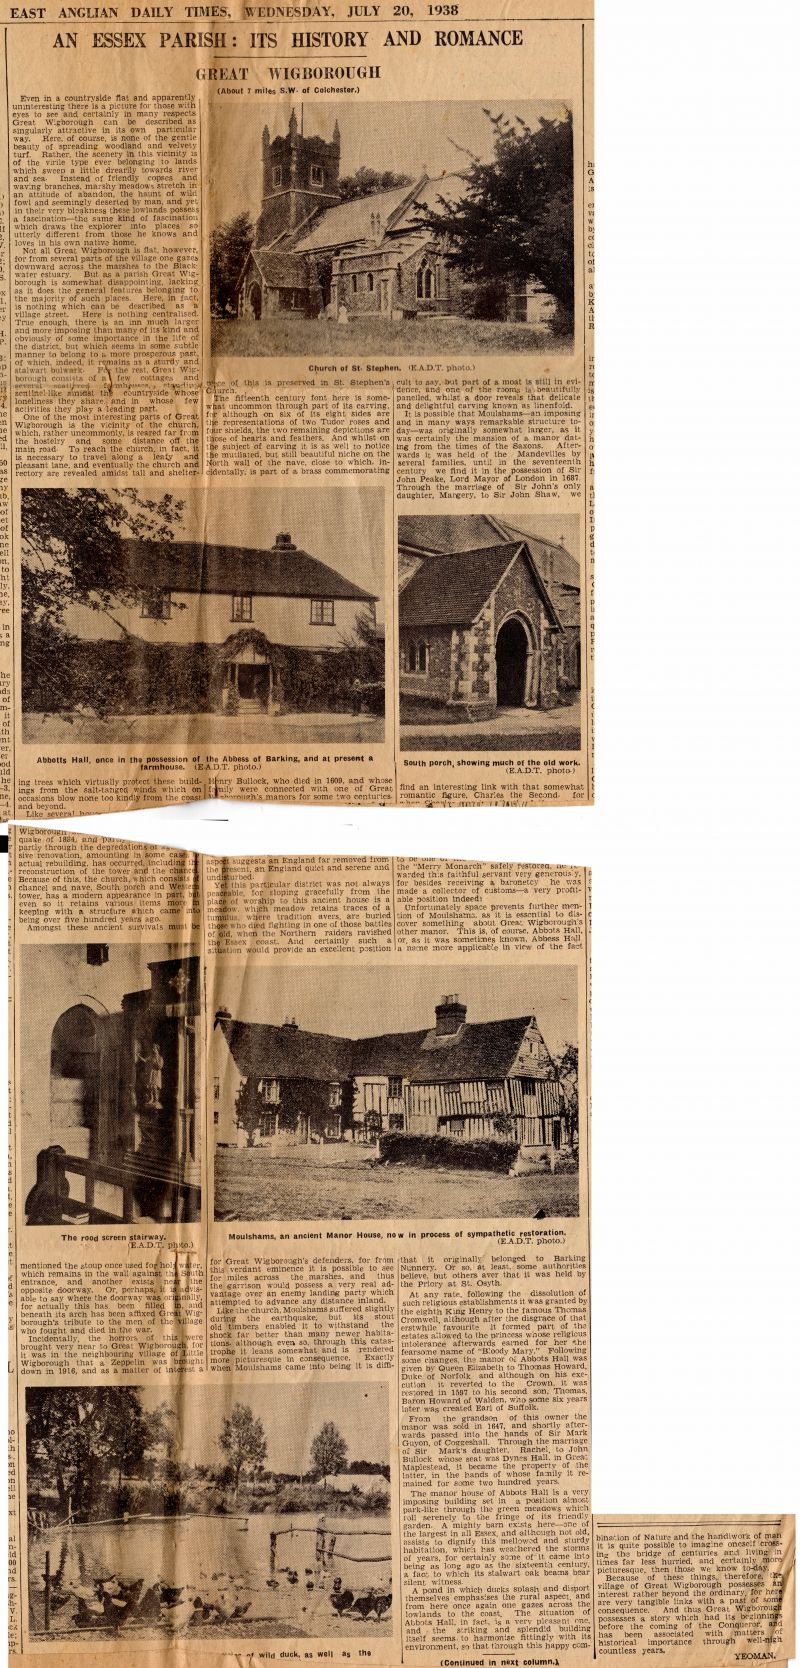 An Essex Parish: Its History and Romance. Great Wigborough.